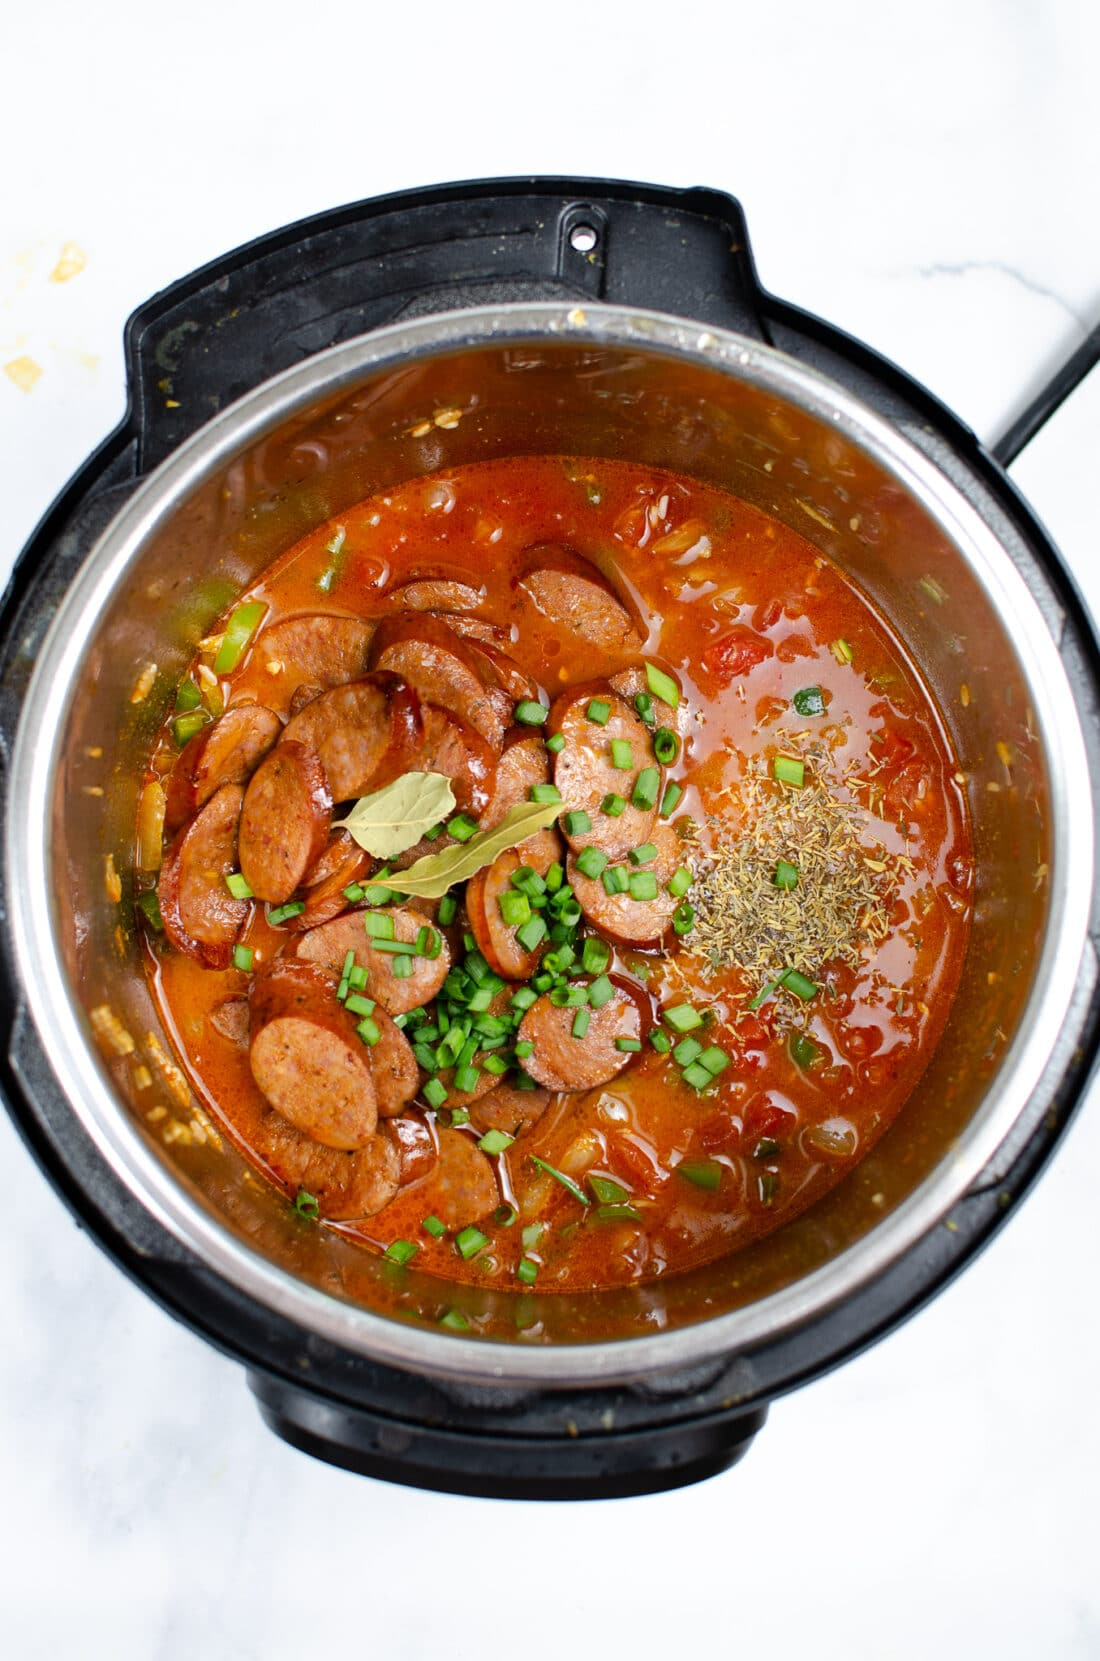 Instant Pot Andouille Sausage Jambalaya Step 6. An authentic Instant Pot Andouille Sausage Jambalaya recipe that can be made in 30 minutes! This flavorful easy one-pan jambalaya recipe is made with andouille sausage, bell peppers, onion, celery, and spices. It's an instant family favorite recipe that is perfect for busy nights.